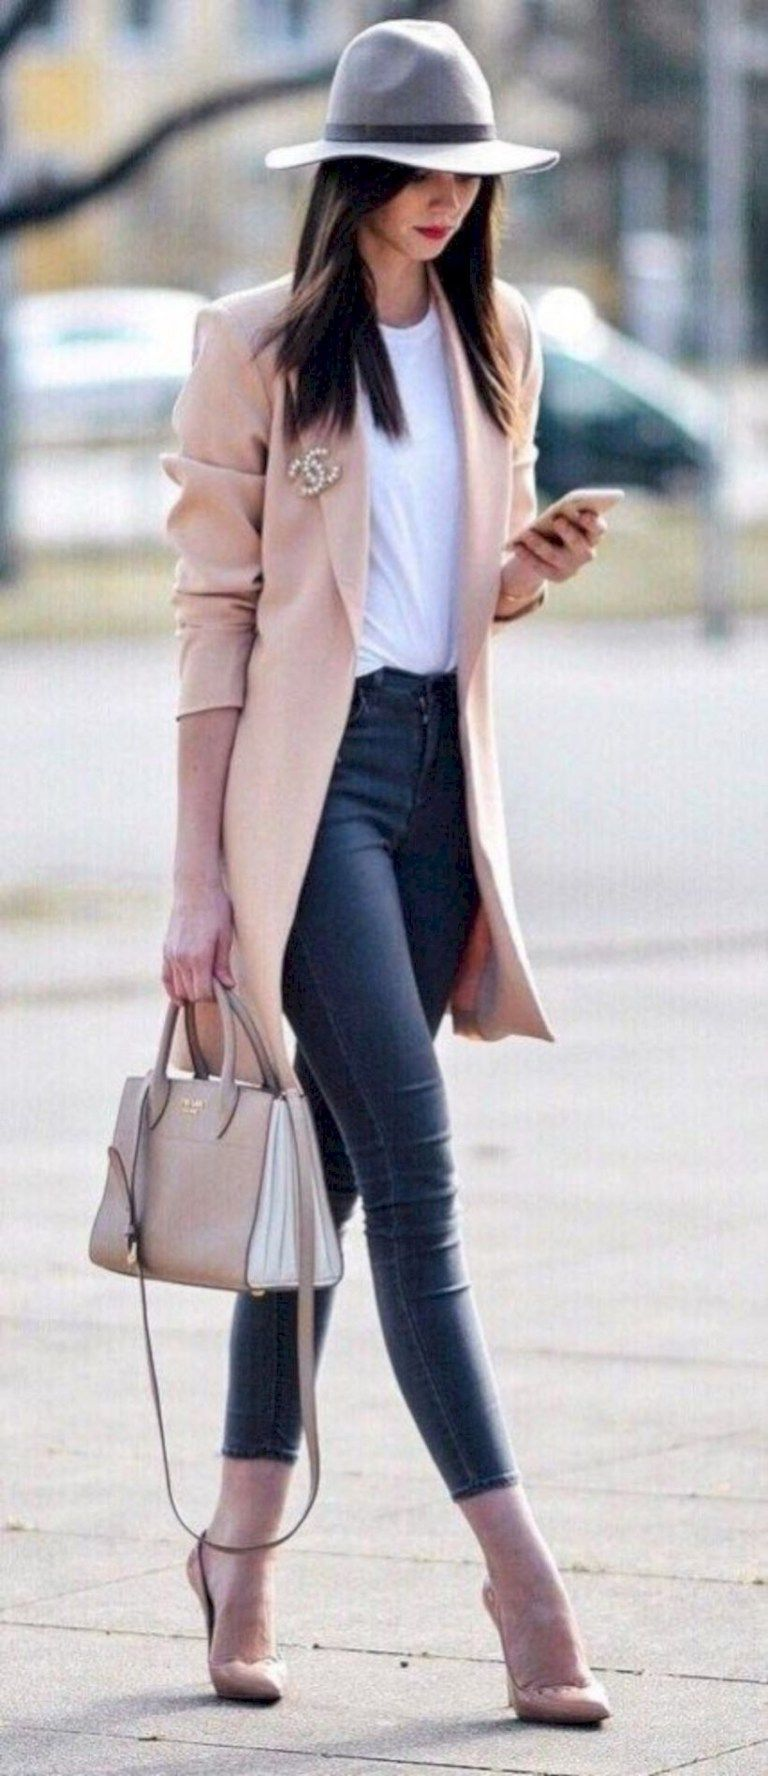 10 Ways to Look Classy on a Budget